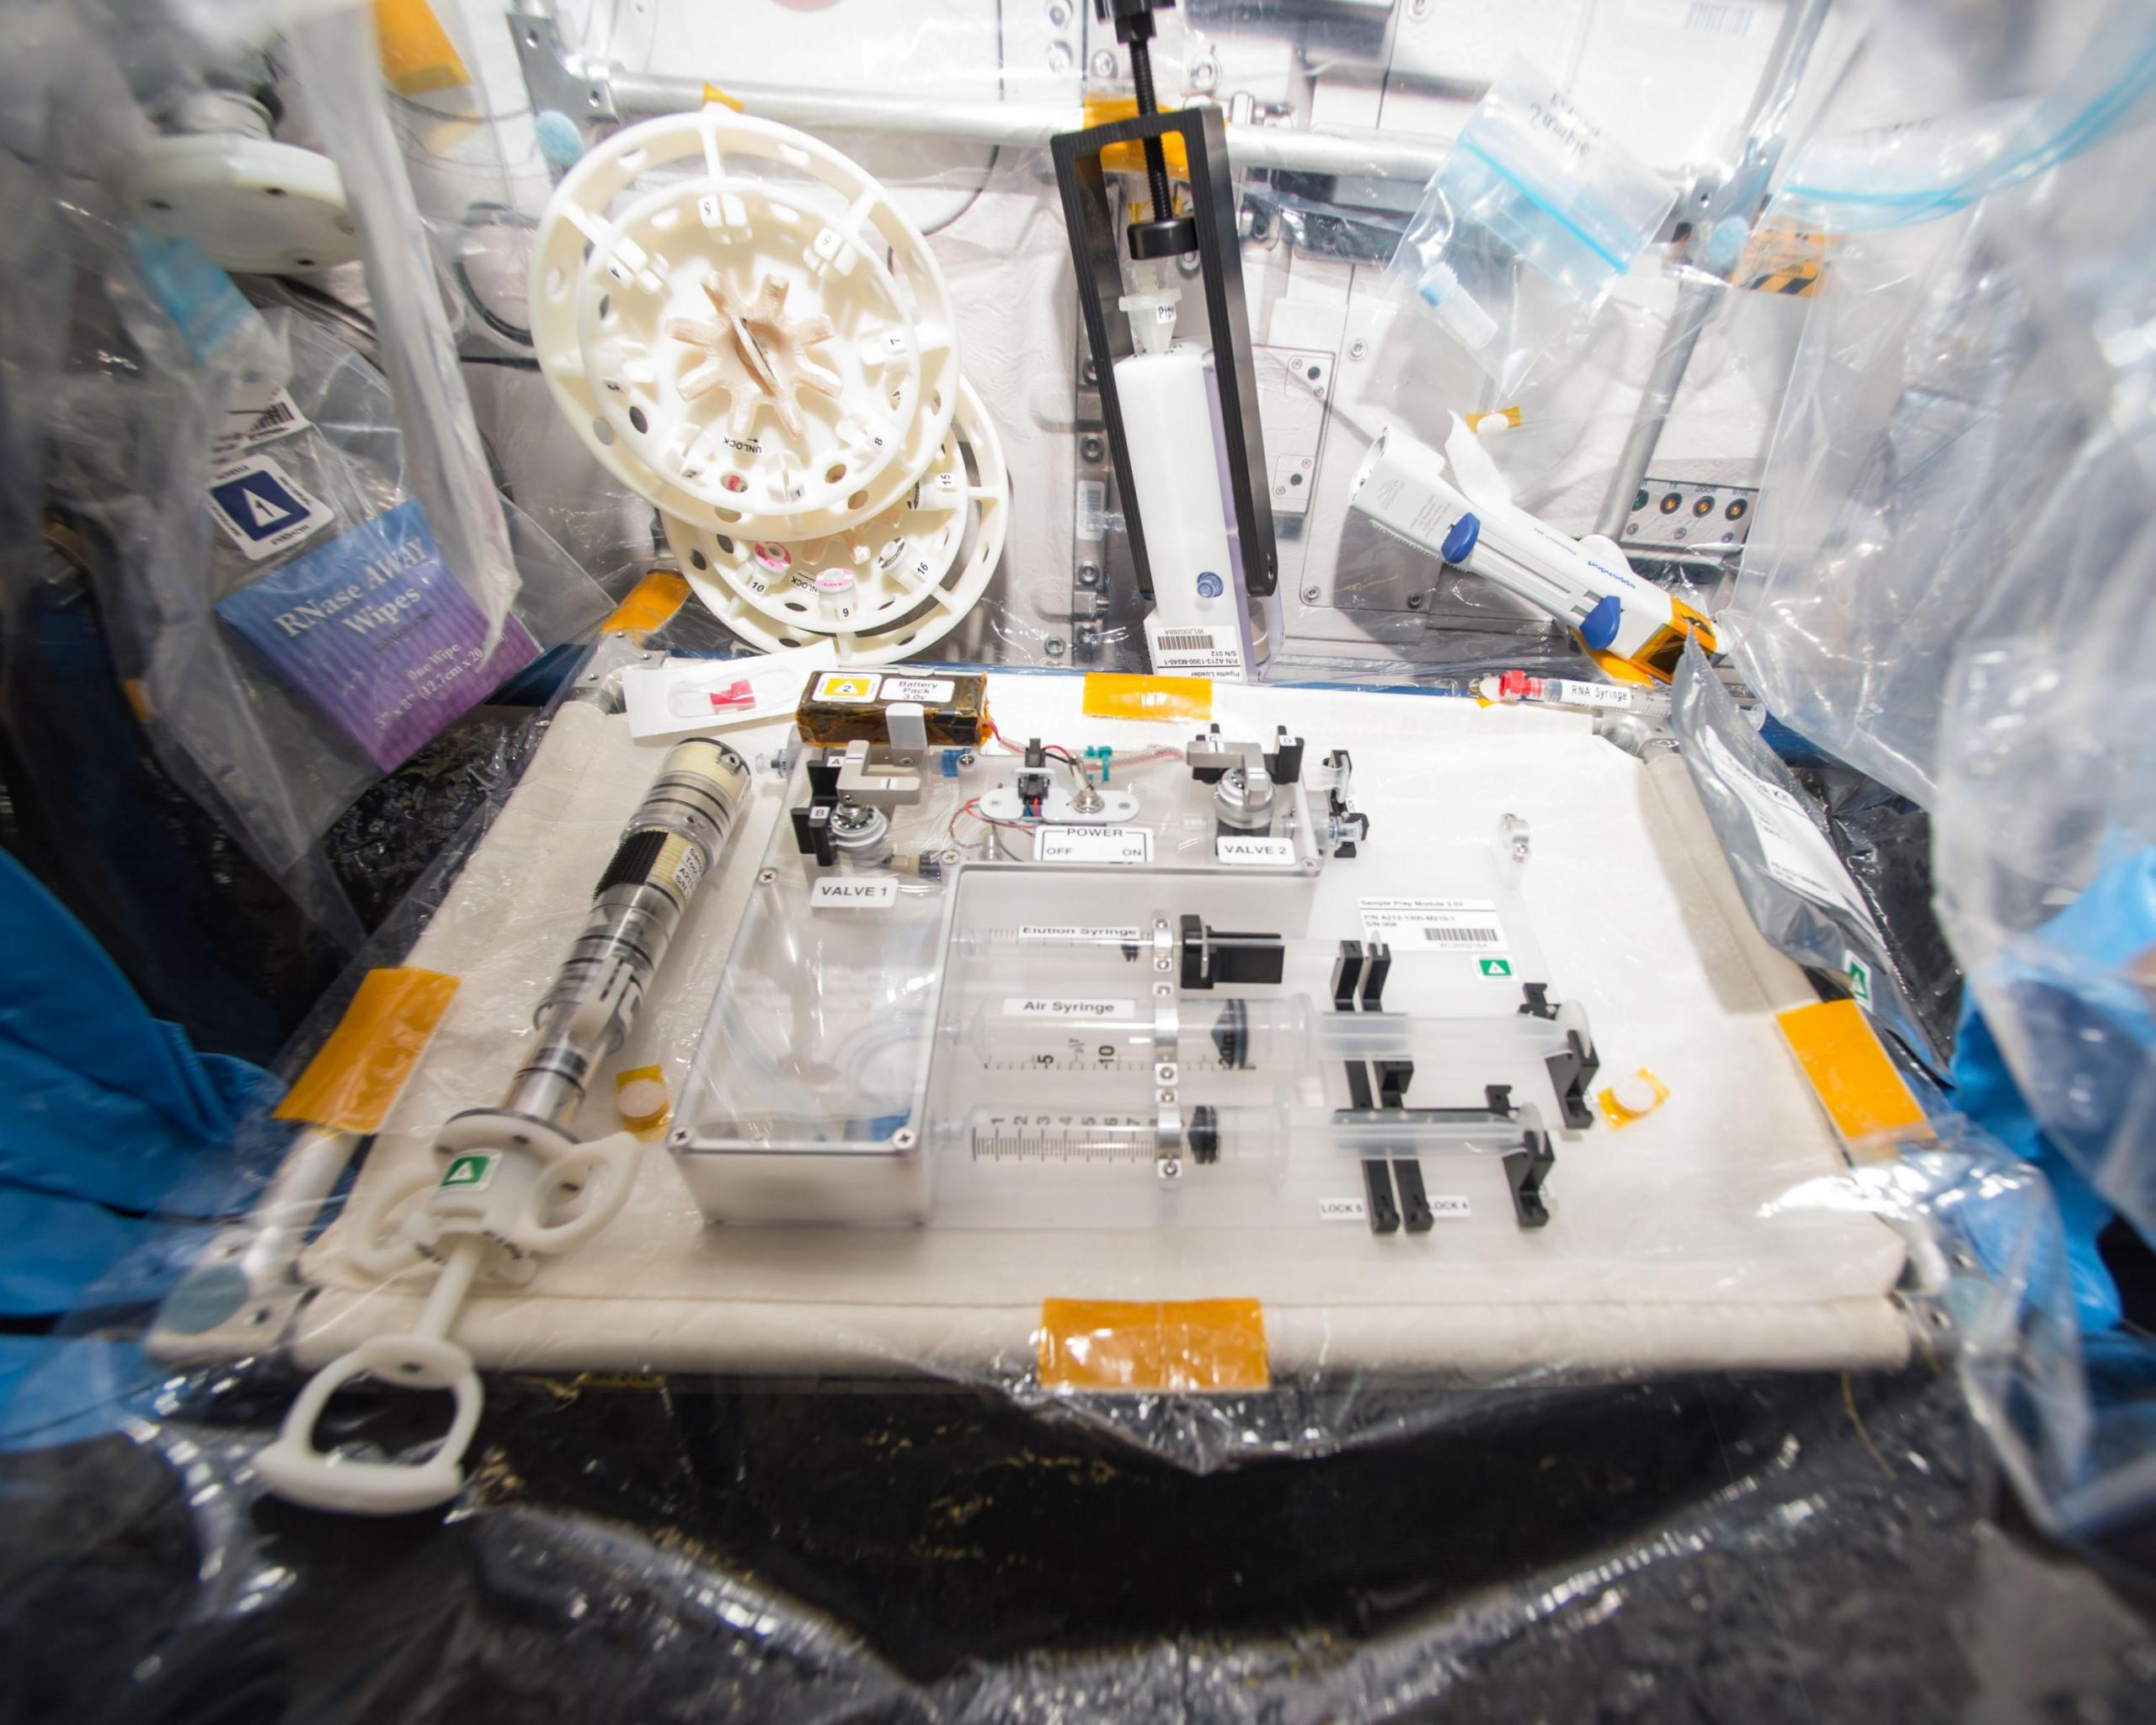 Lab with test equipment comprised of syringes, plastic containers, and other apparatuses.